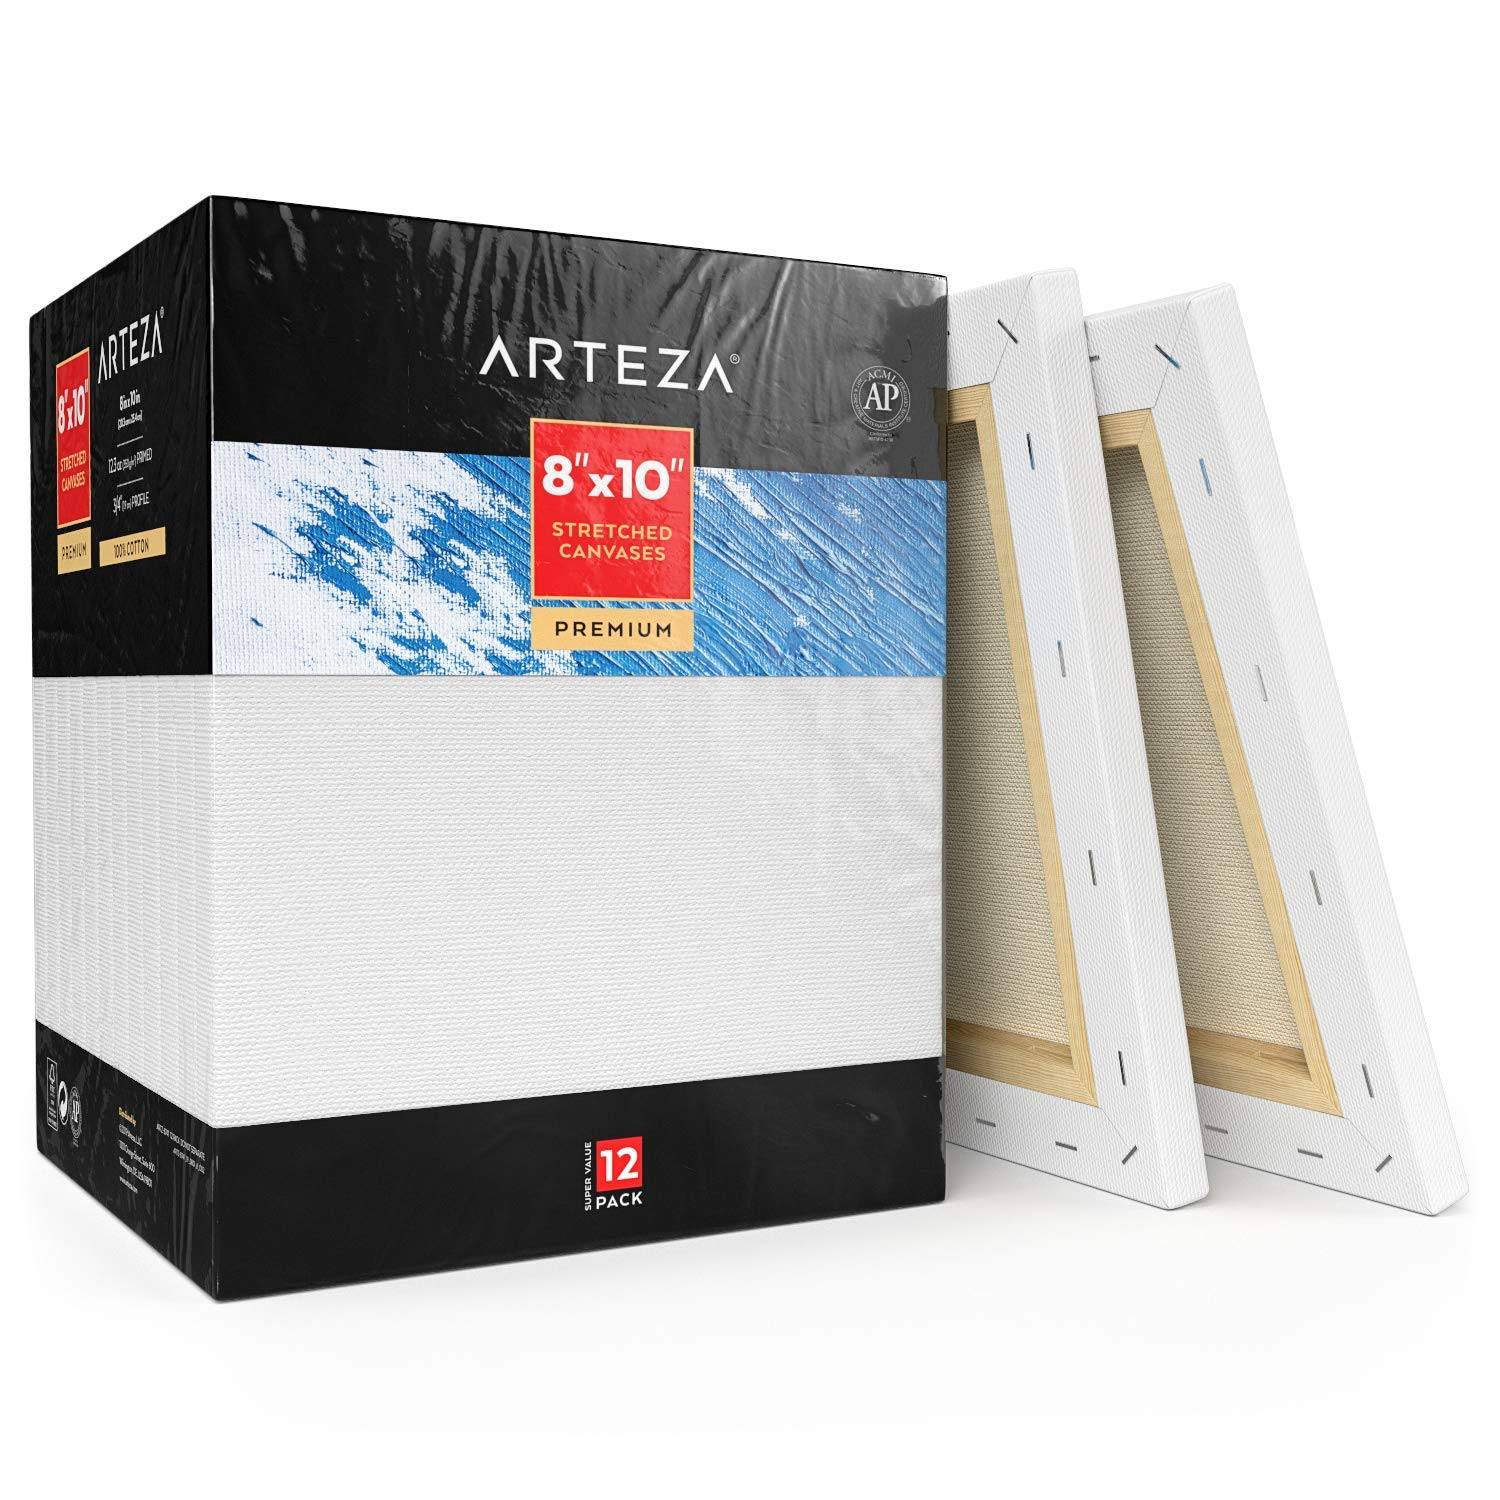 Arteza 8x10'' Professional Stretched White Blank Canvas, Bulk Pack of 12, Primed, 100% Cotton for Painting, Acrylic Pouring, Oil Paint & Wet Art Media, Canvases for Artist, Hobby Painters & Beginner by ARTEZA